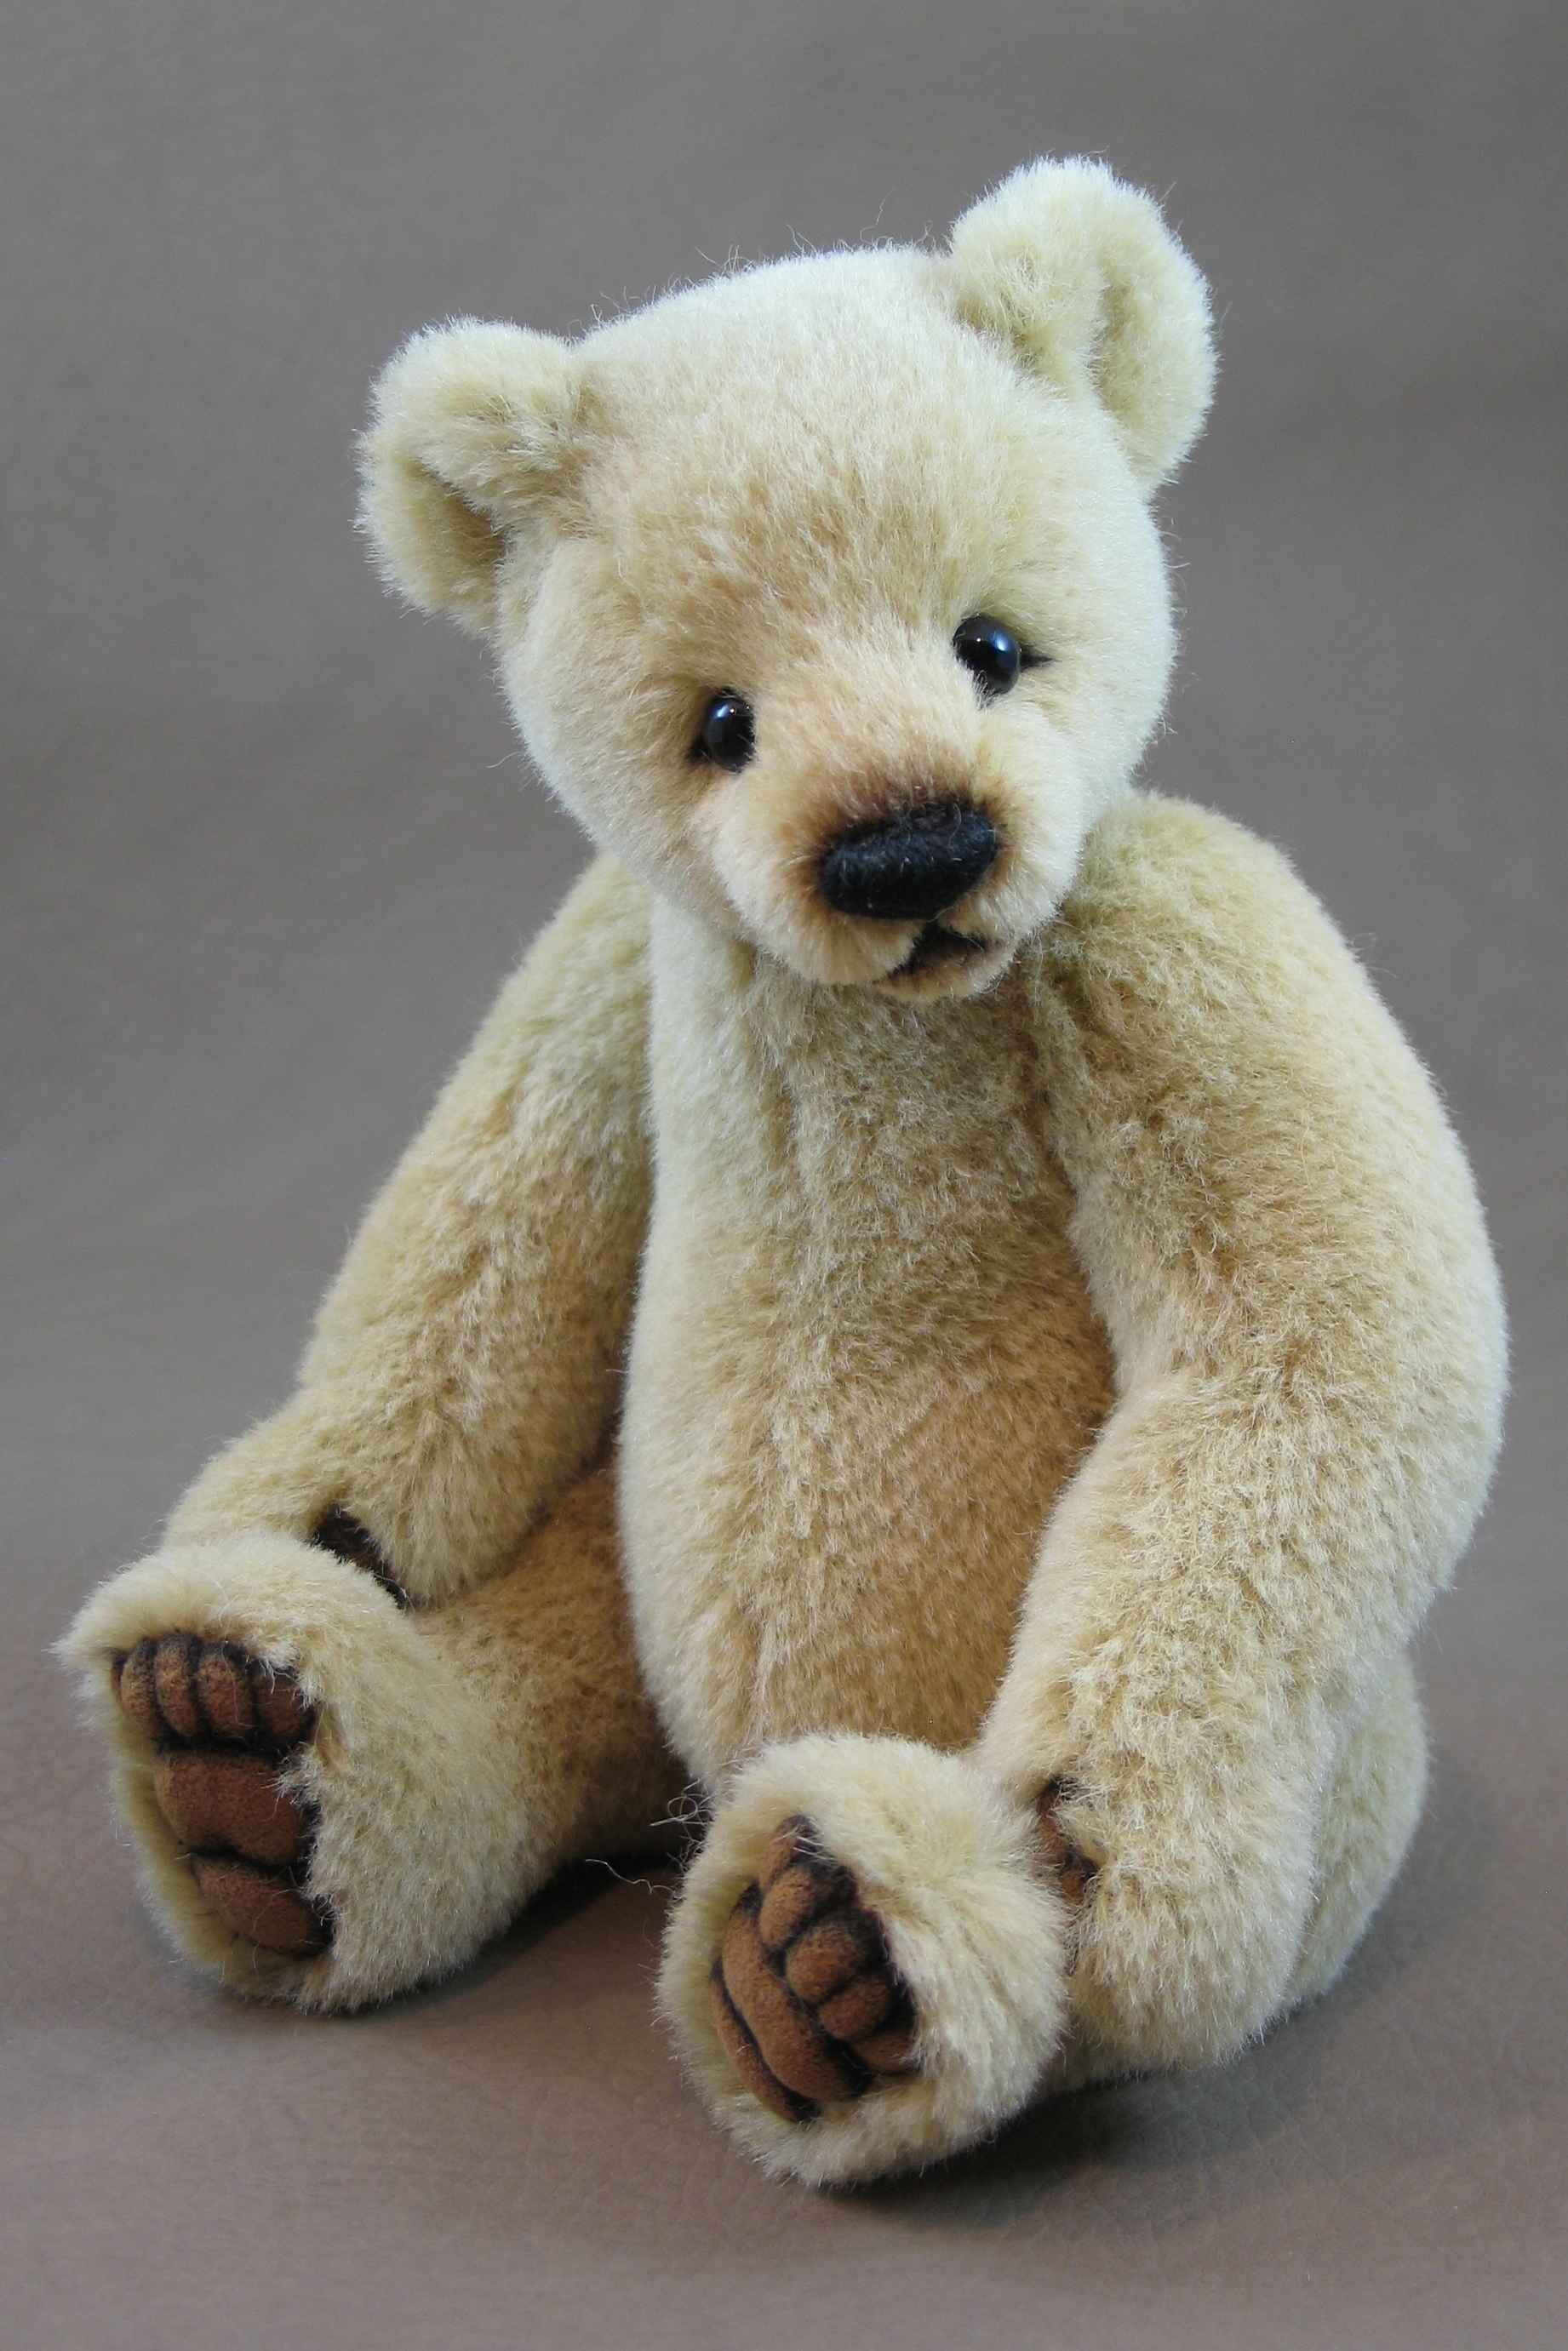 teddy-bear-making-04.jpg